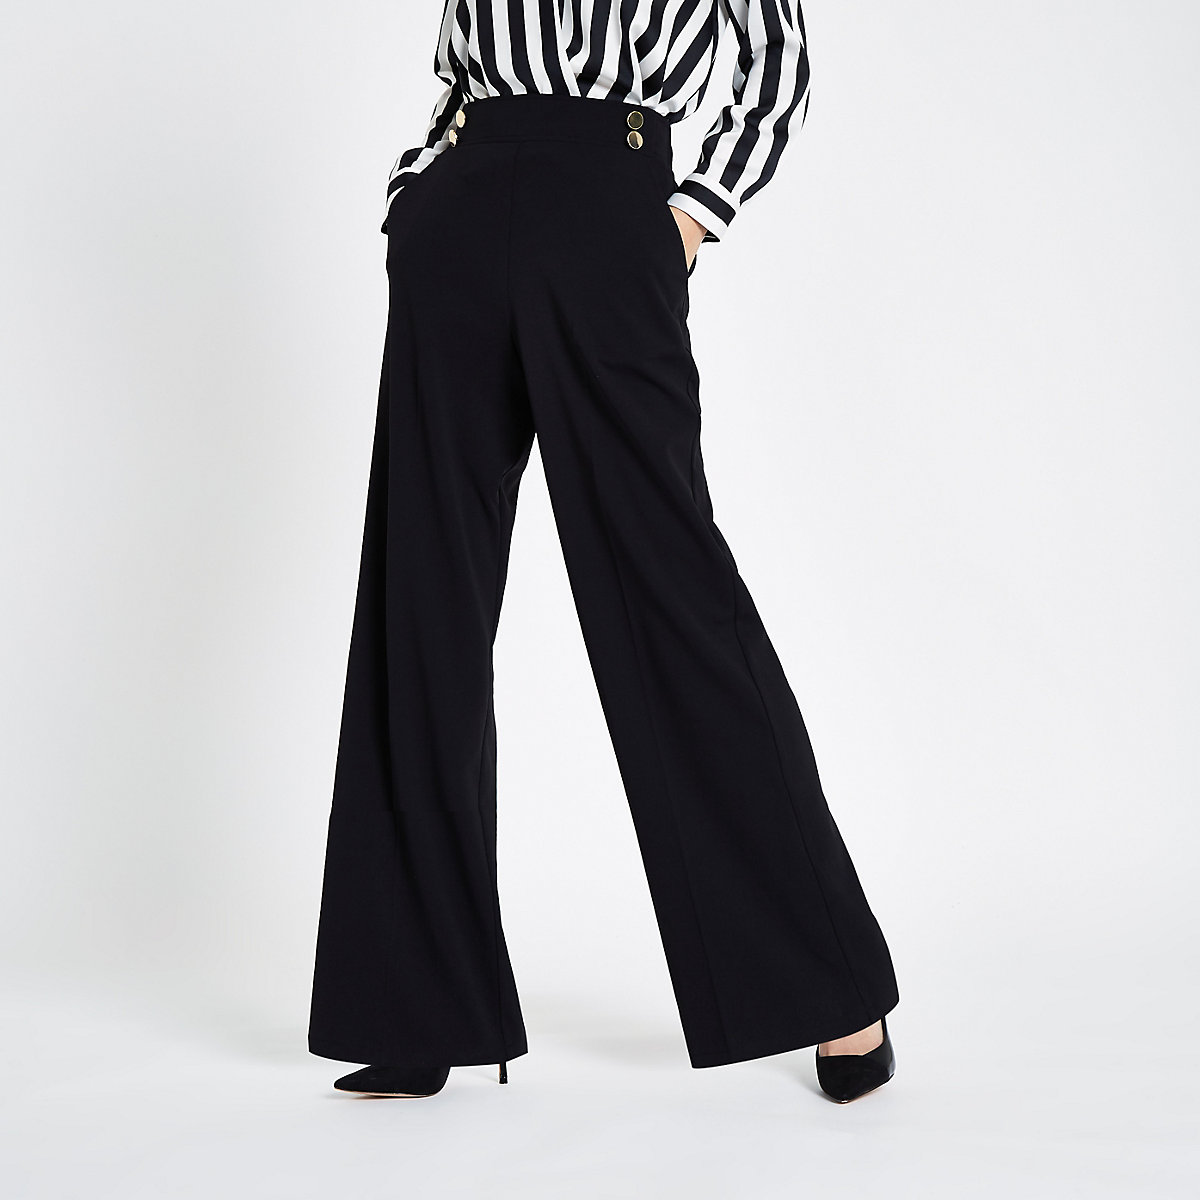 Black double button wide leg pull on trousers